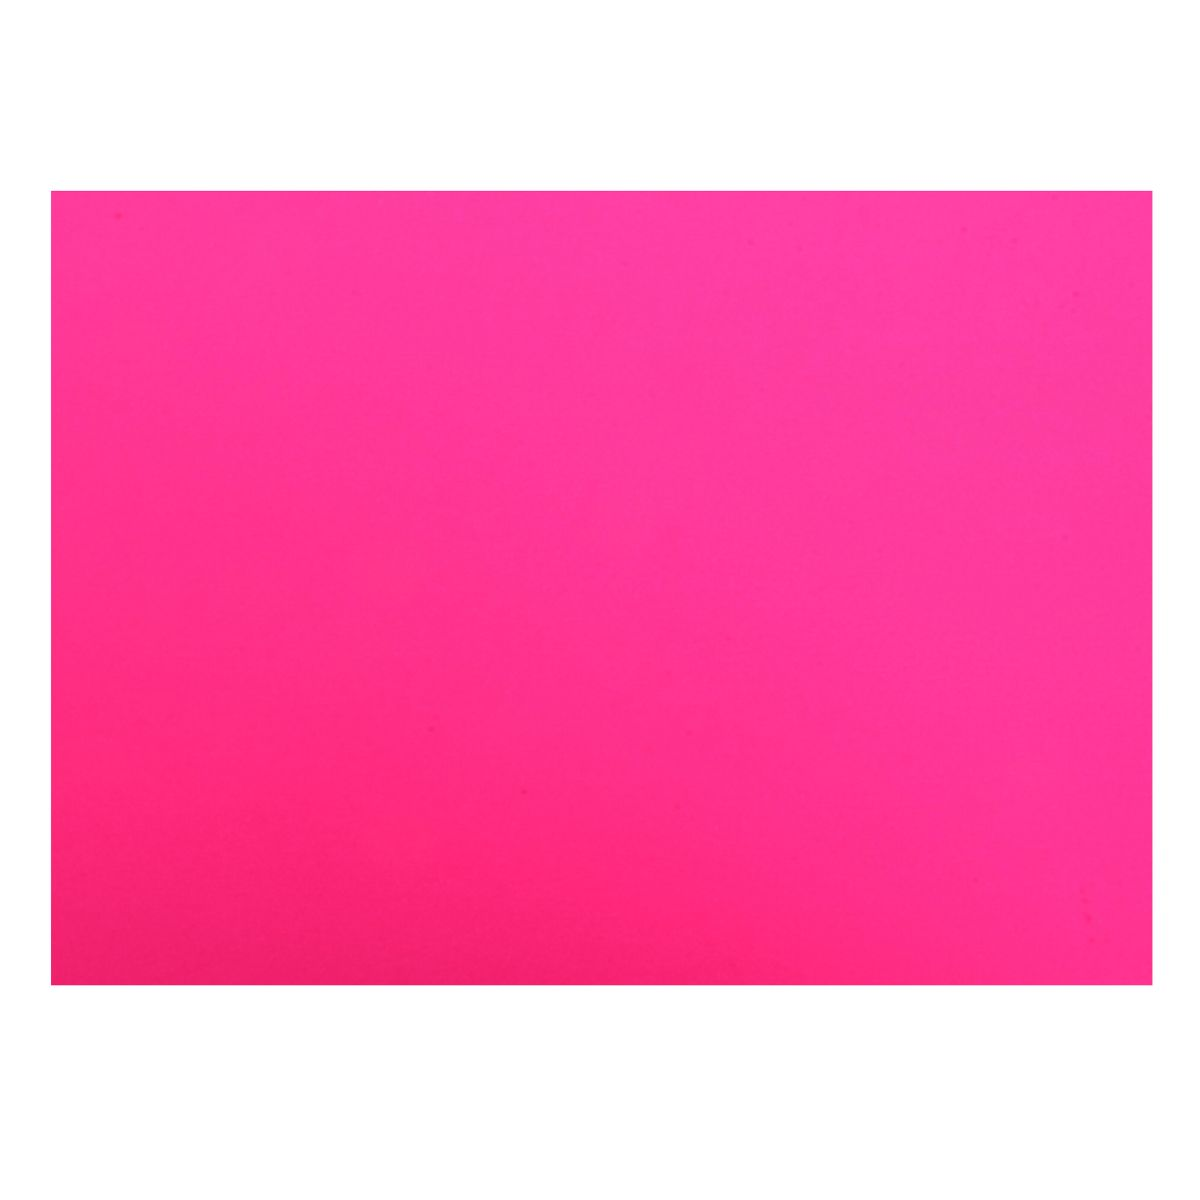 Image of 380mic Fluorescent Card 450x640mm, Pink